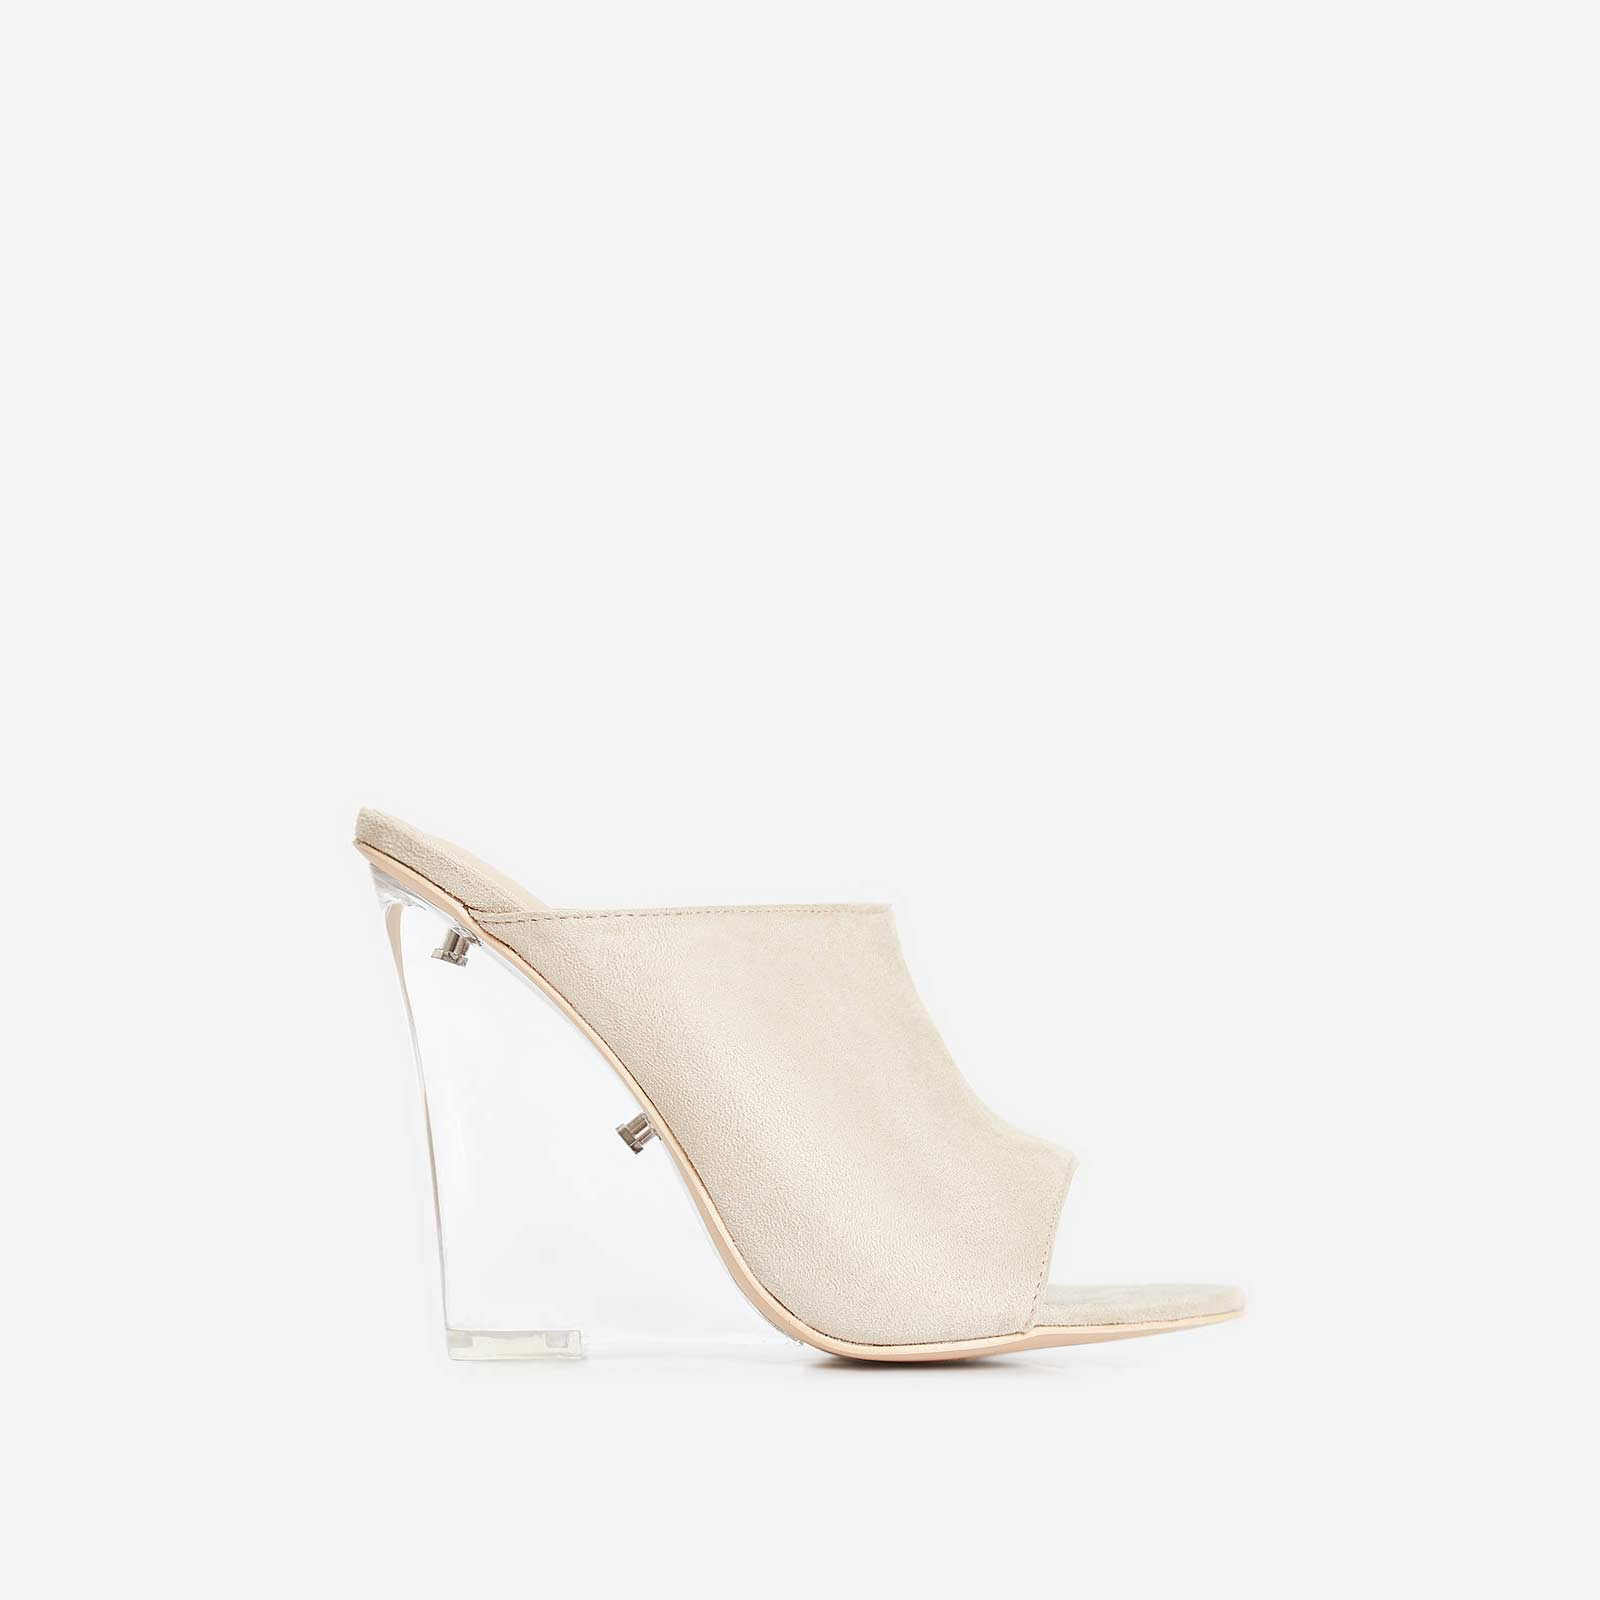 Candy Perspex Wedge Mule In Nude Faux Suede